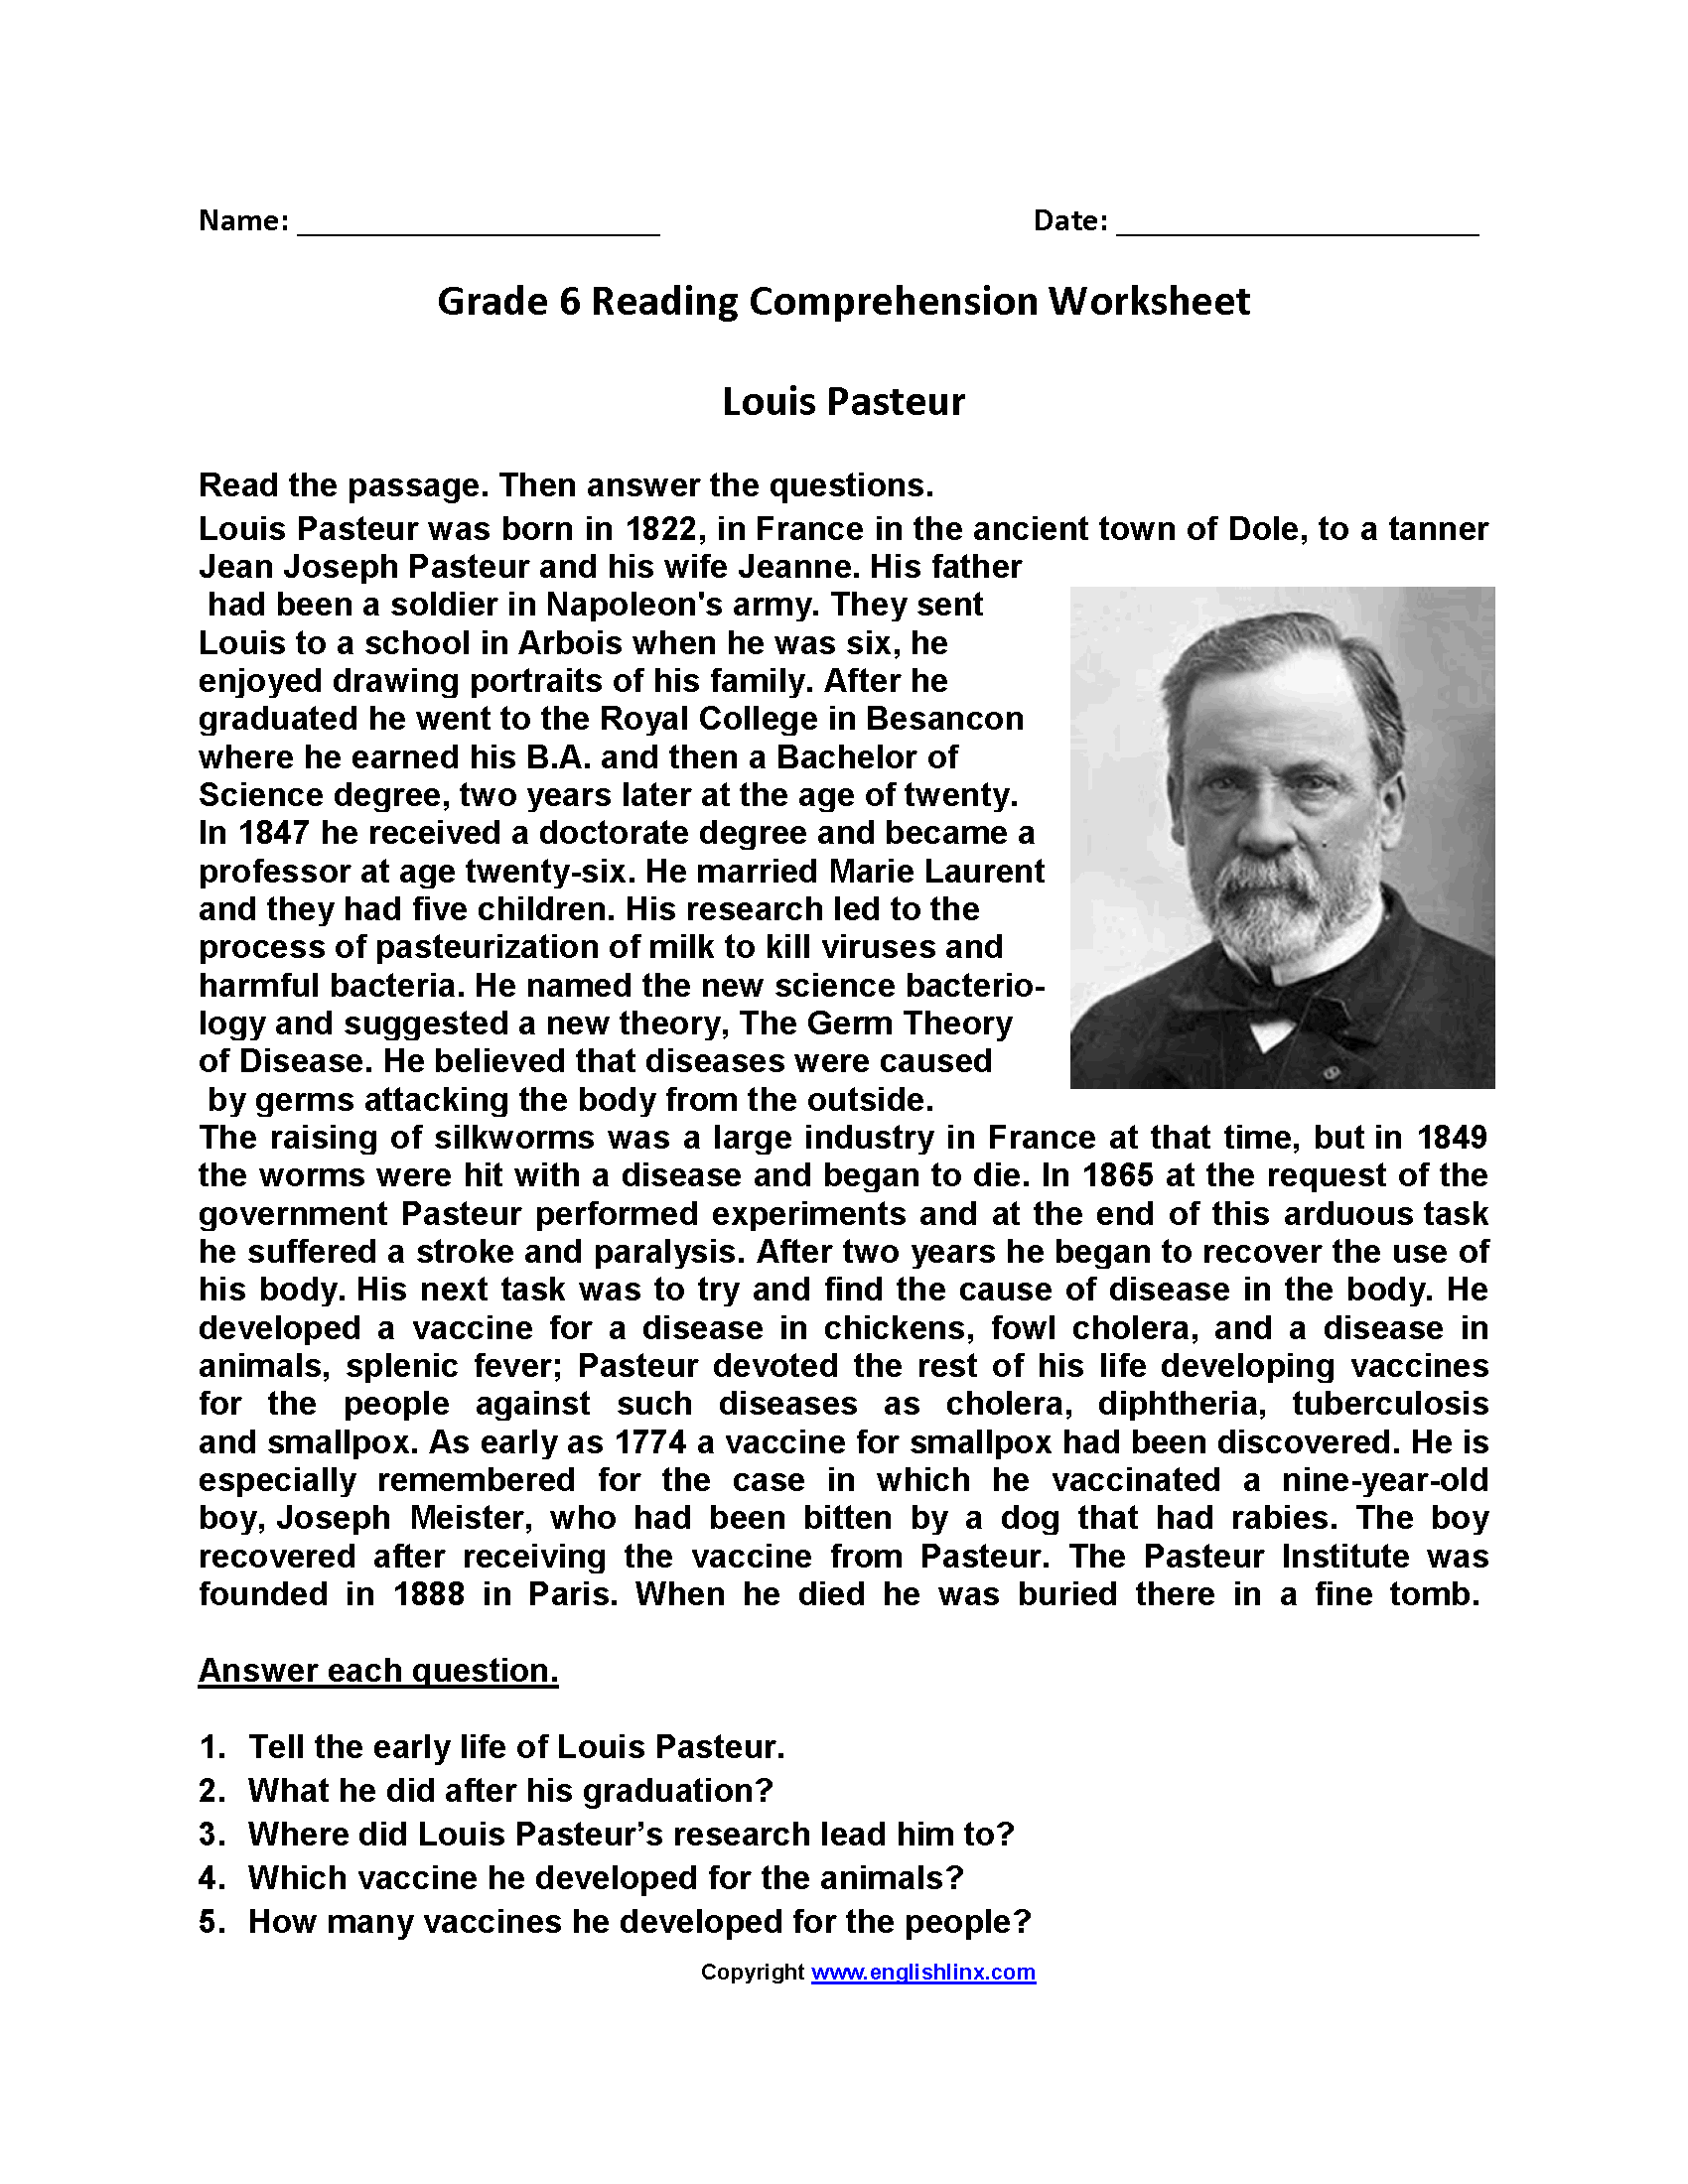 Louis Pasteur Sixth Grade Reading Worksheets With Images